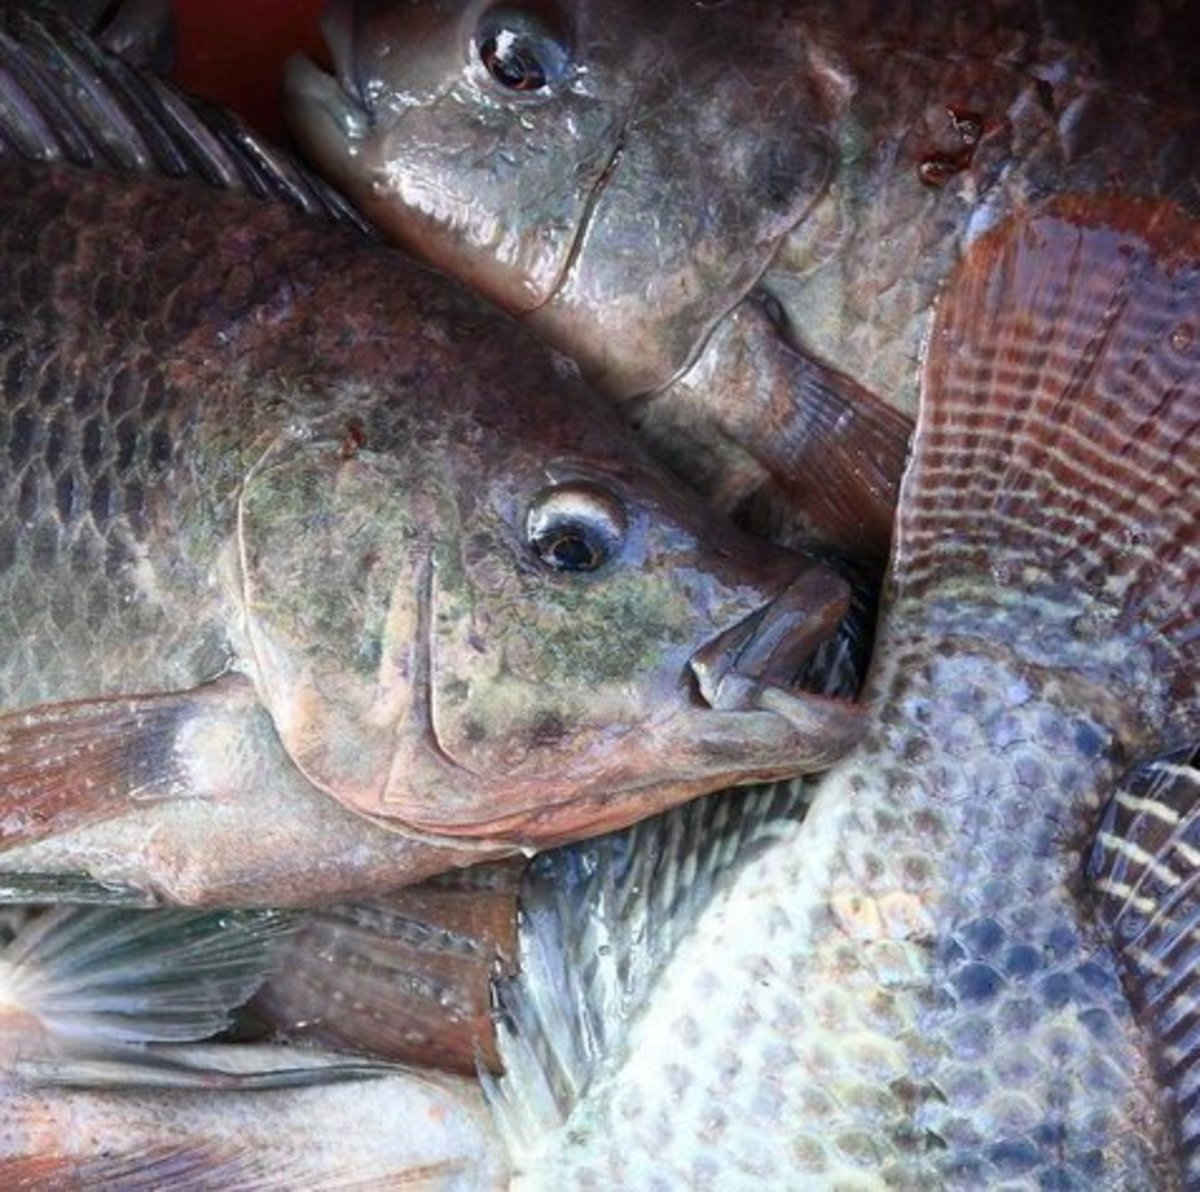 Tilapia Farming in Lakes, Cages and Tanks